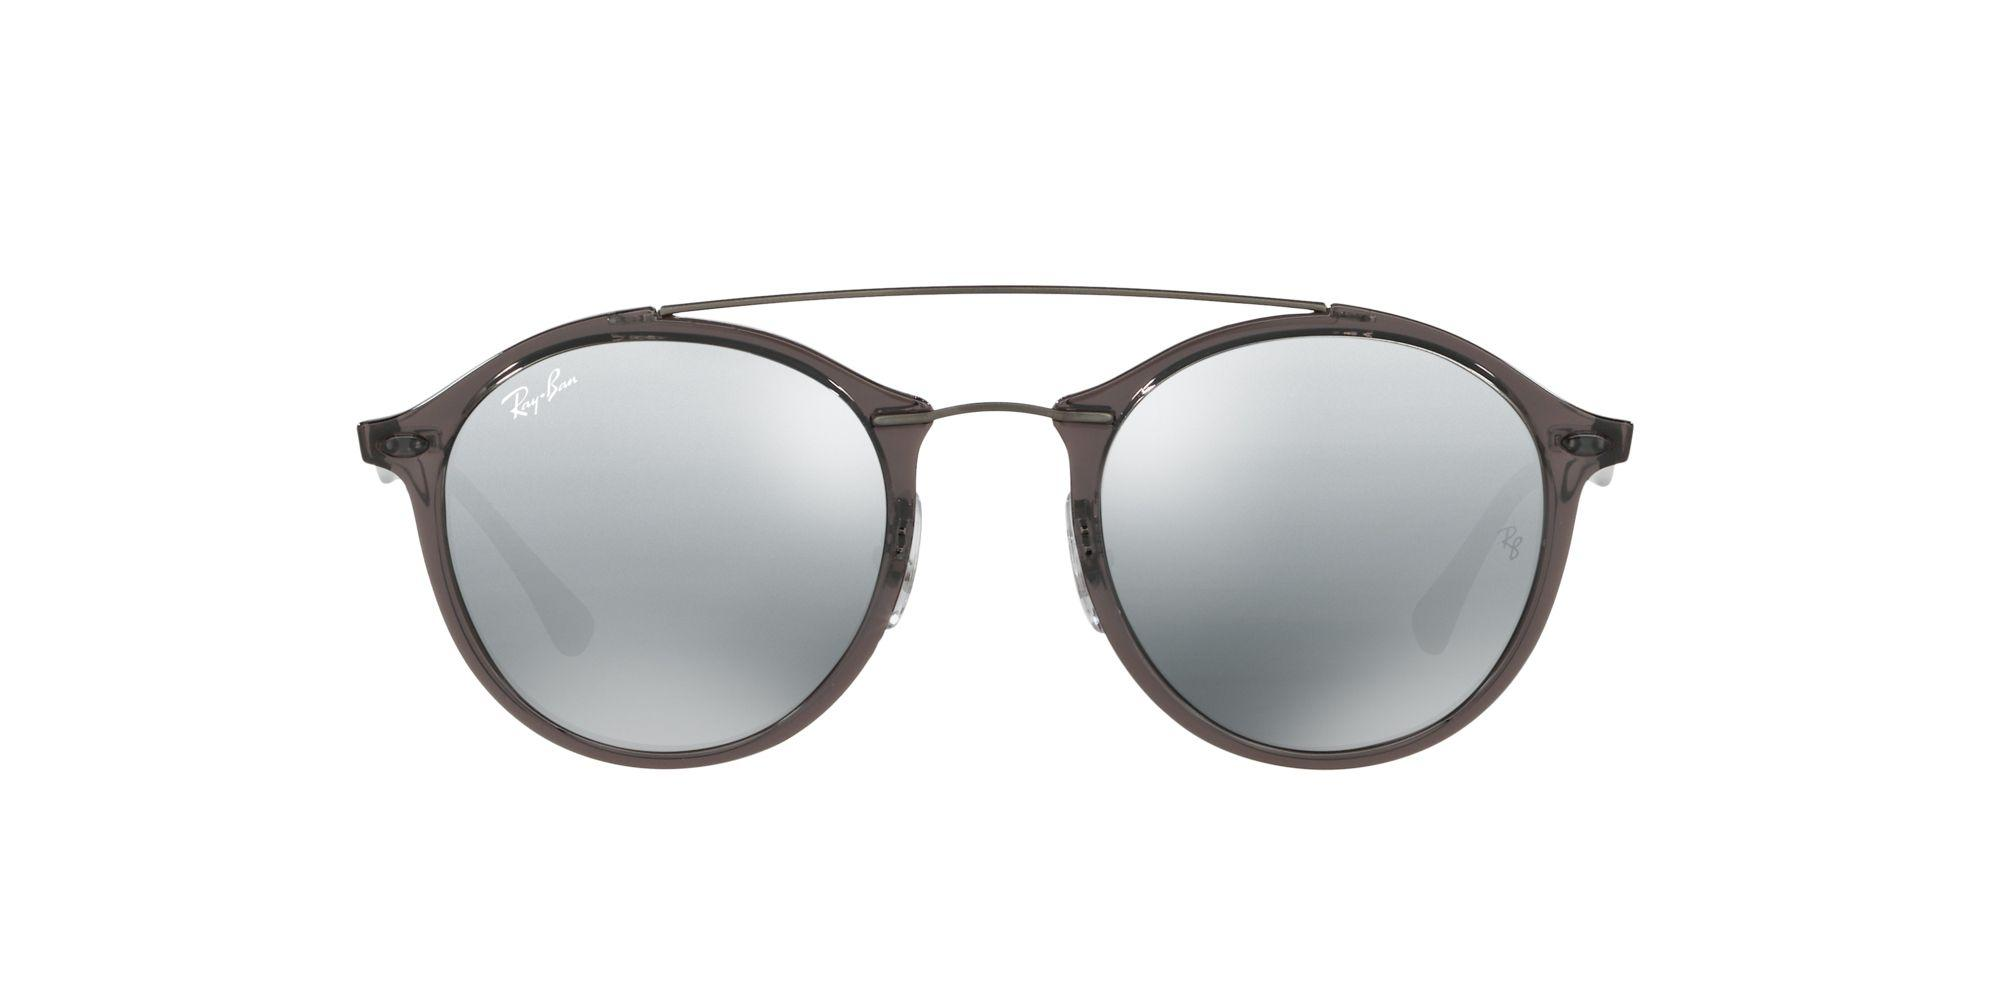 Ray-Ban Rb4266 Round Sunglasses in Grey (Grey) for Men